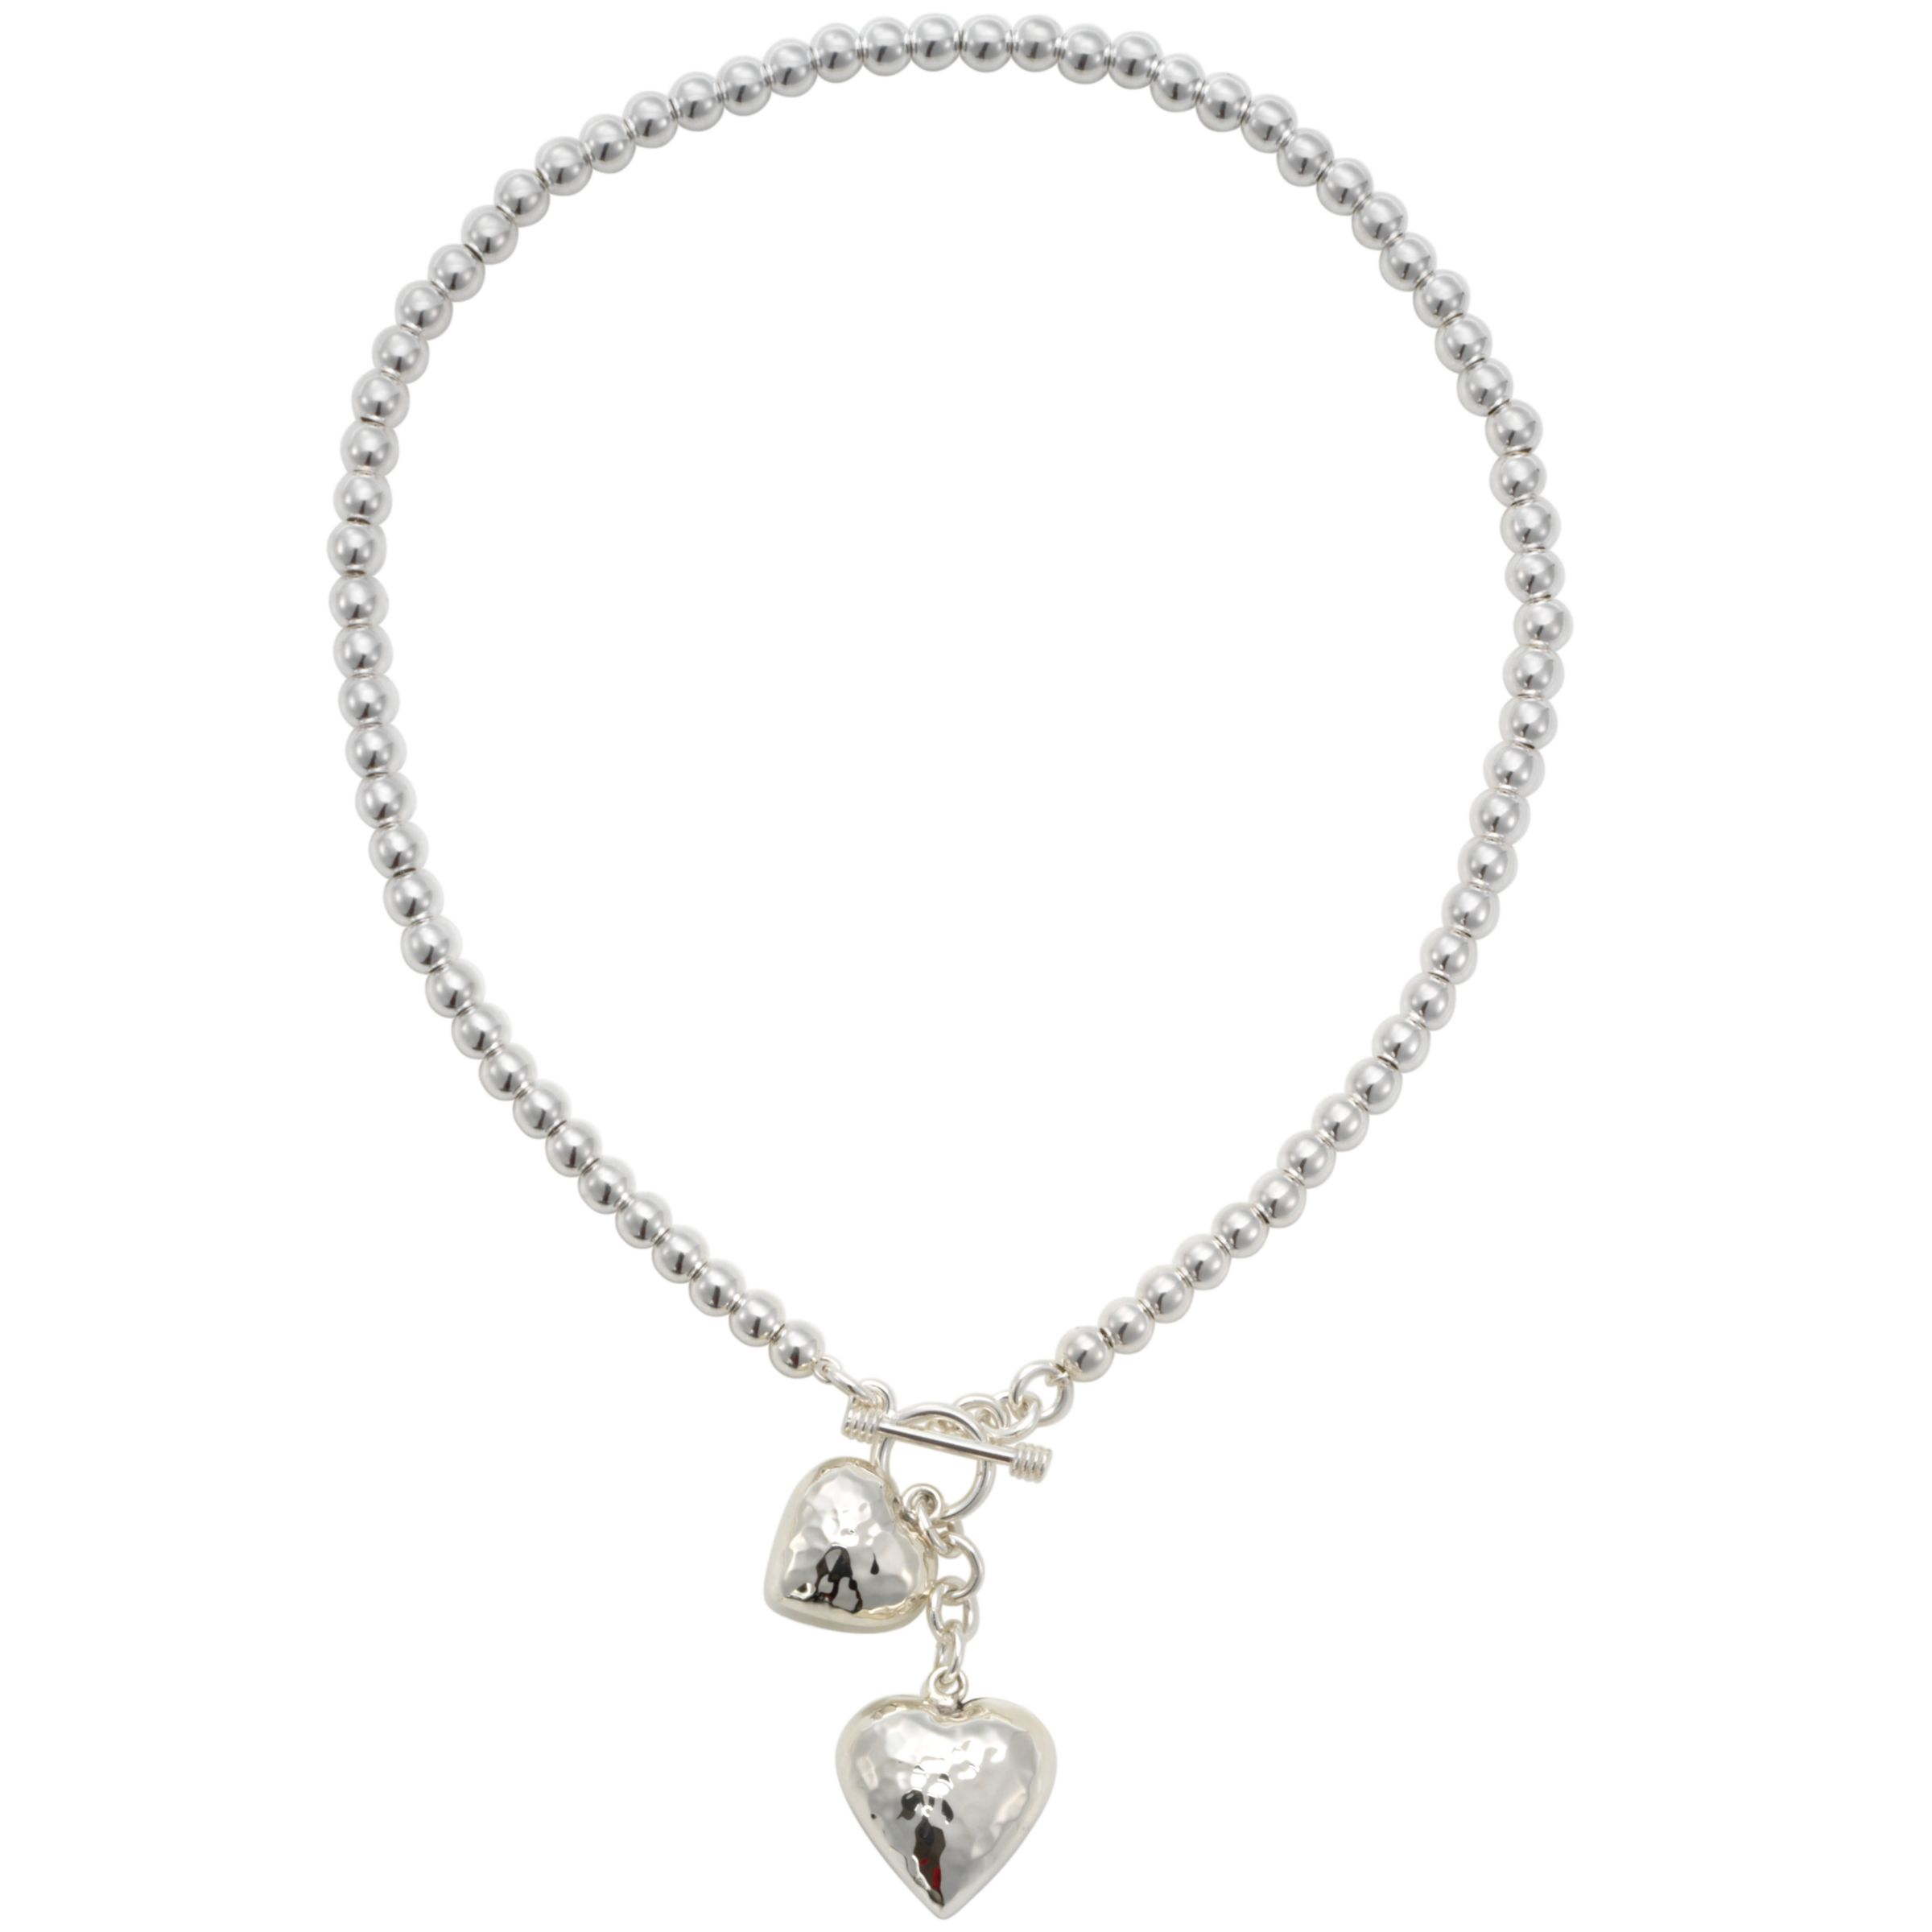 Andea Silver Round Bead Necklace with Heart Charms